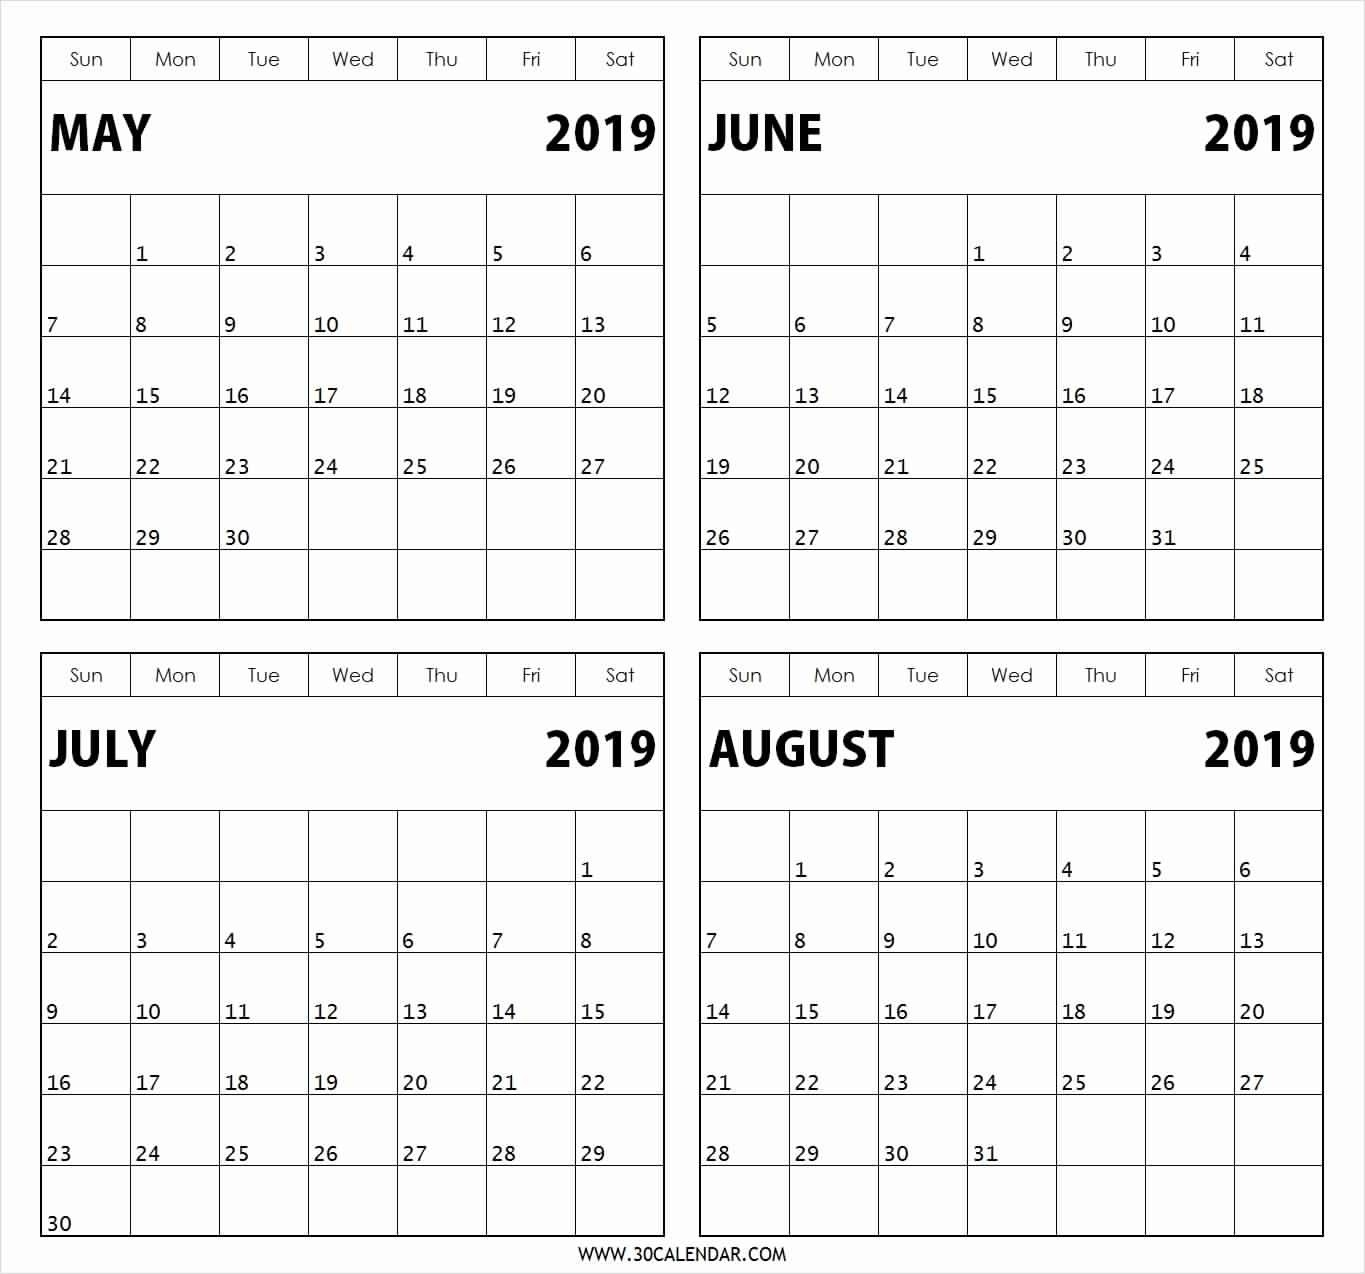 Free Printable Calendar 3 Months Per Page 2019 • Printable-Blank Calendar 4 Months One Page